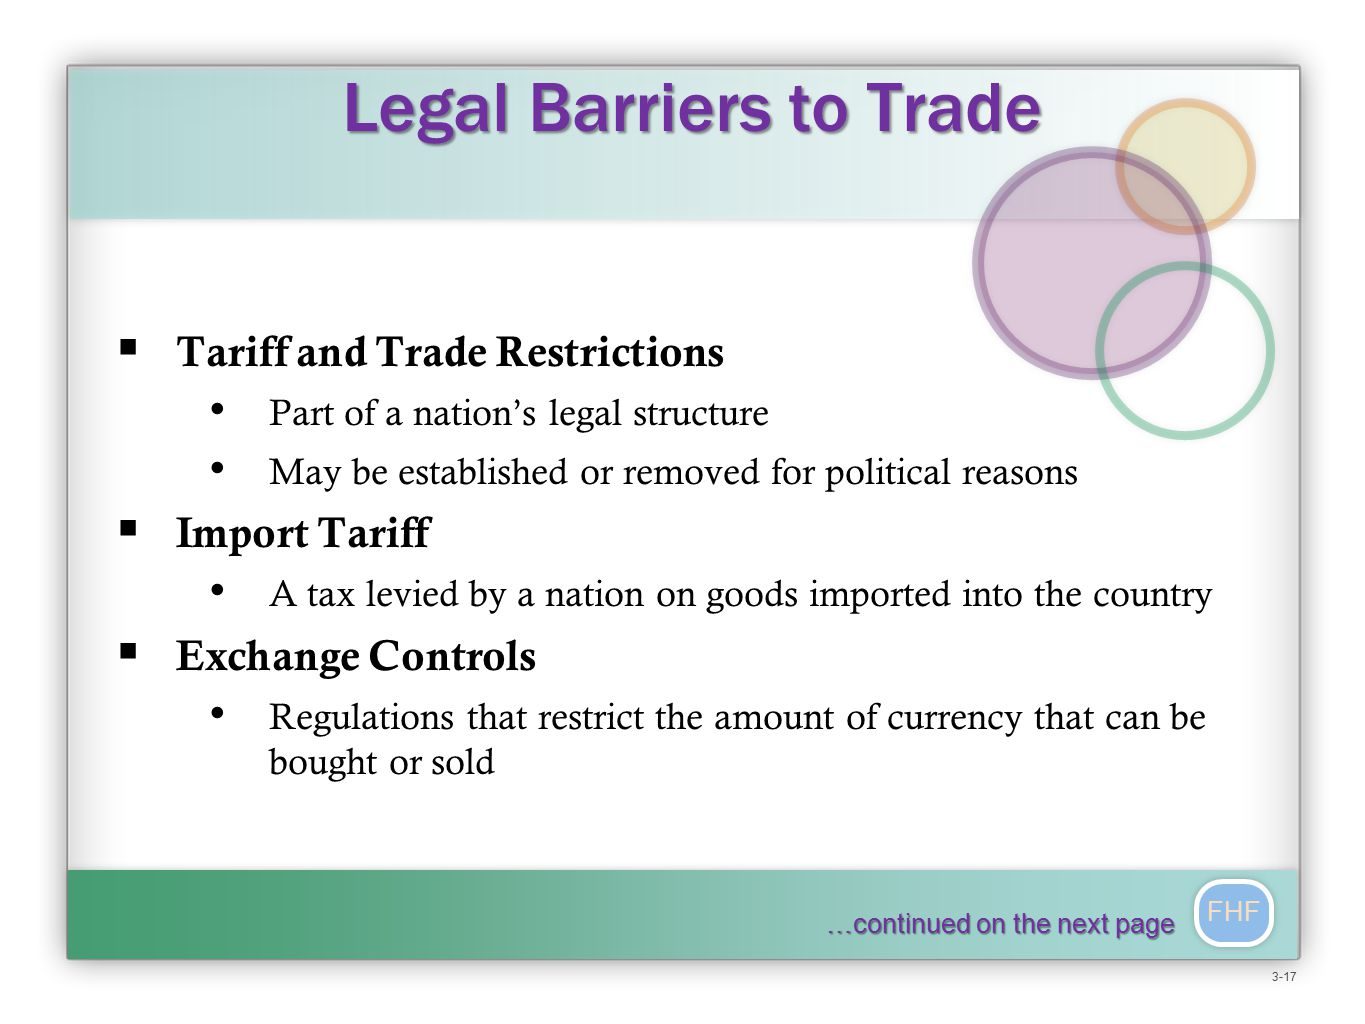 FHF Legal Barriers to Trade Legal Barriers to Trade  Tariff and Trade Restrictions Part of a nation's legal structure May be established or removed for political reasons  Import Tariff A tax levied by a nation on goods imported into the country  Exchange Controls Regulations that restrict the amount of currency that can be bought or sold …continued on the next page 3-17